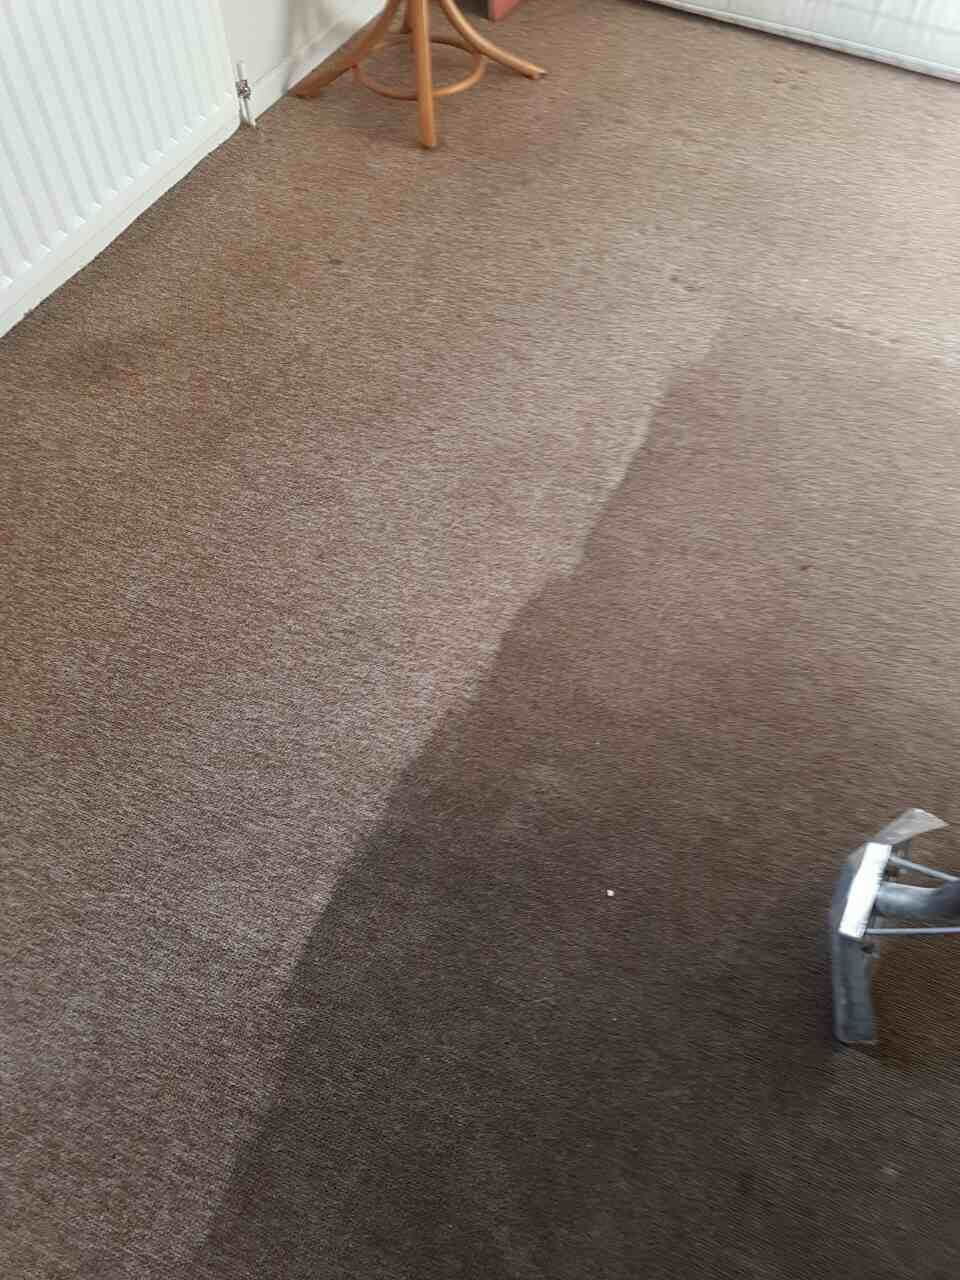 SW4 carpet cleaning Clapham